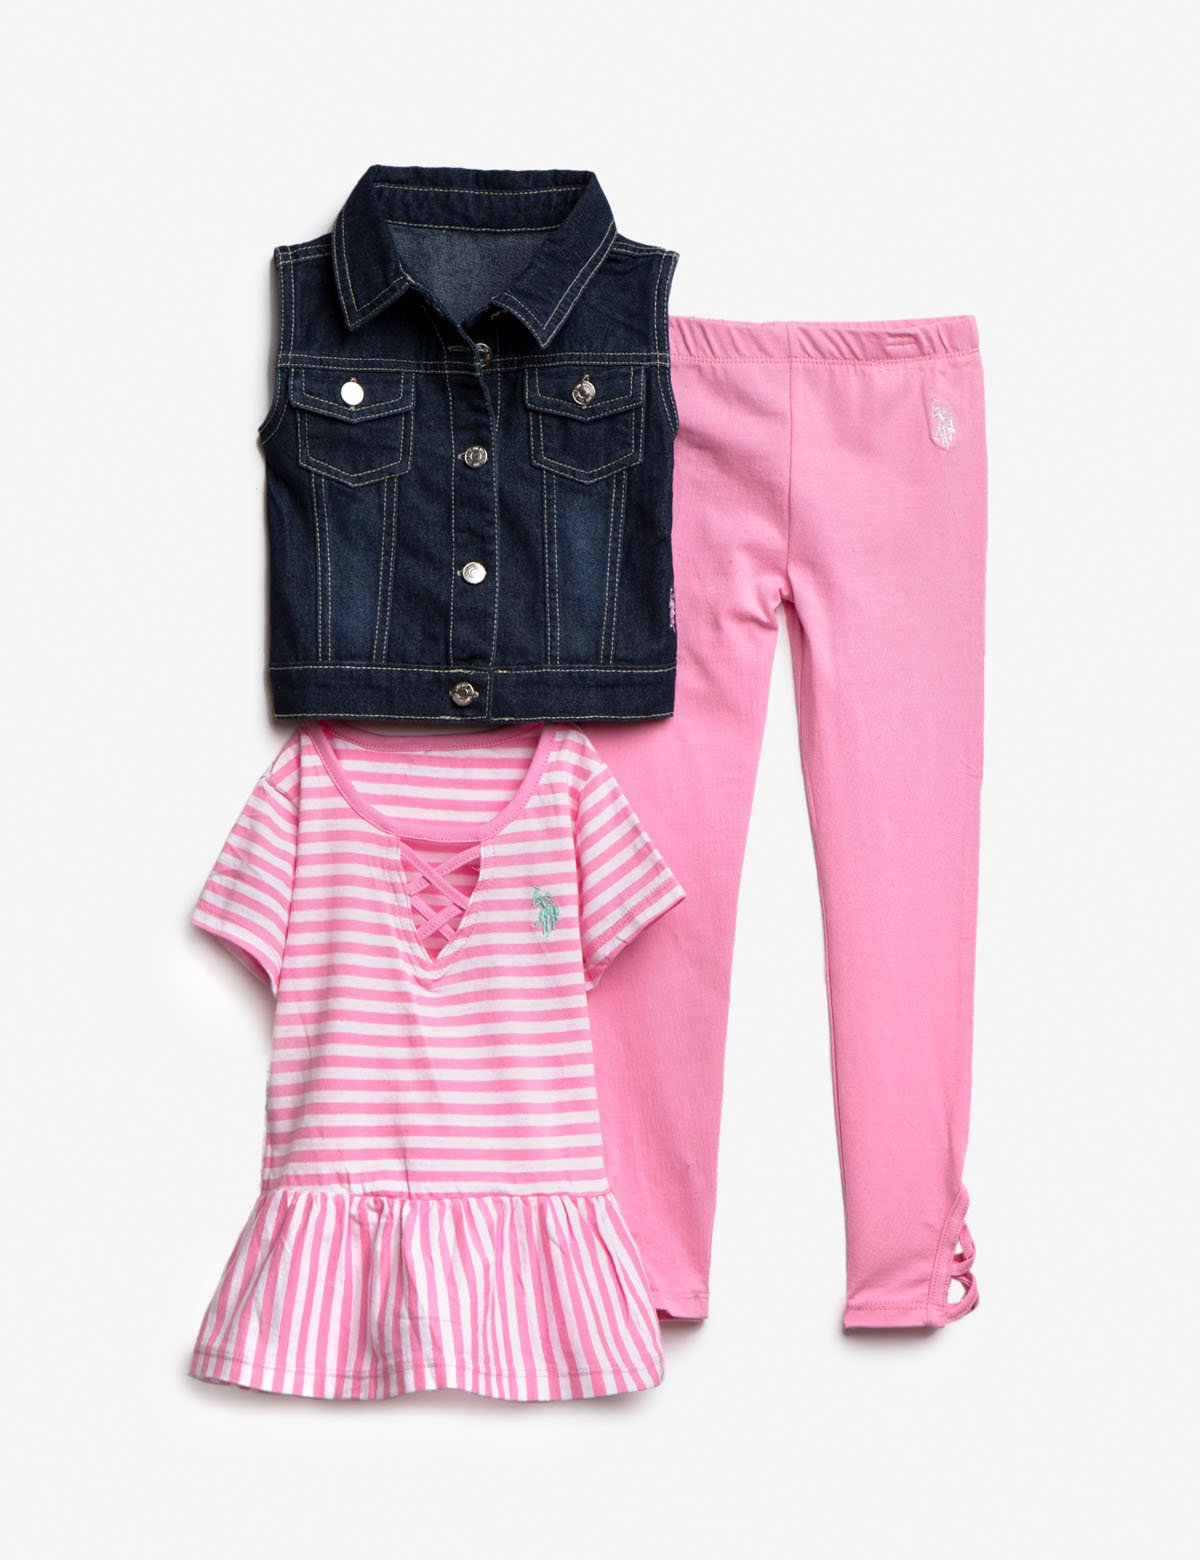 GIRLS 3 PIECE SET: VEST, TEE & LEGGINGS